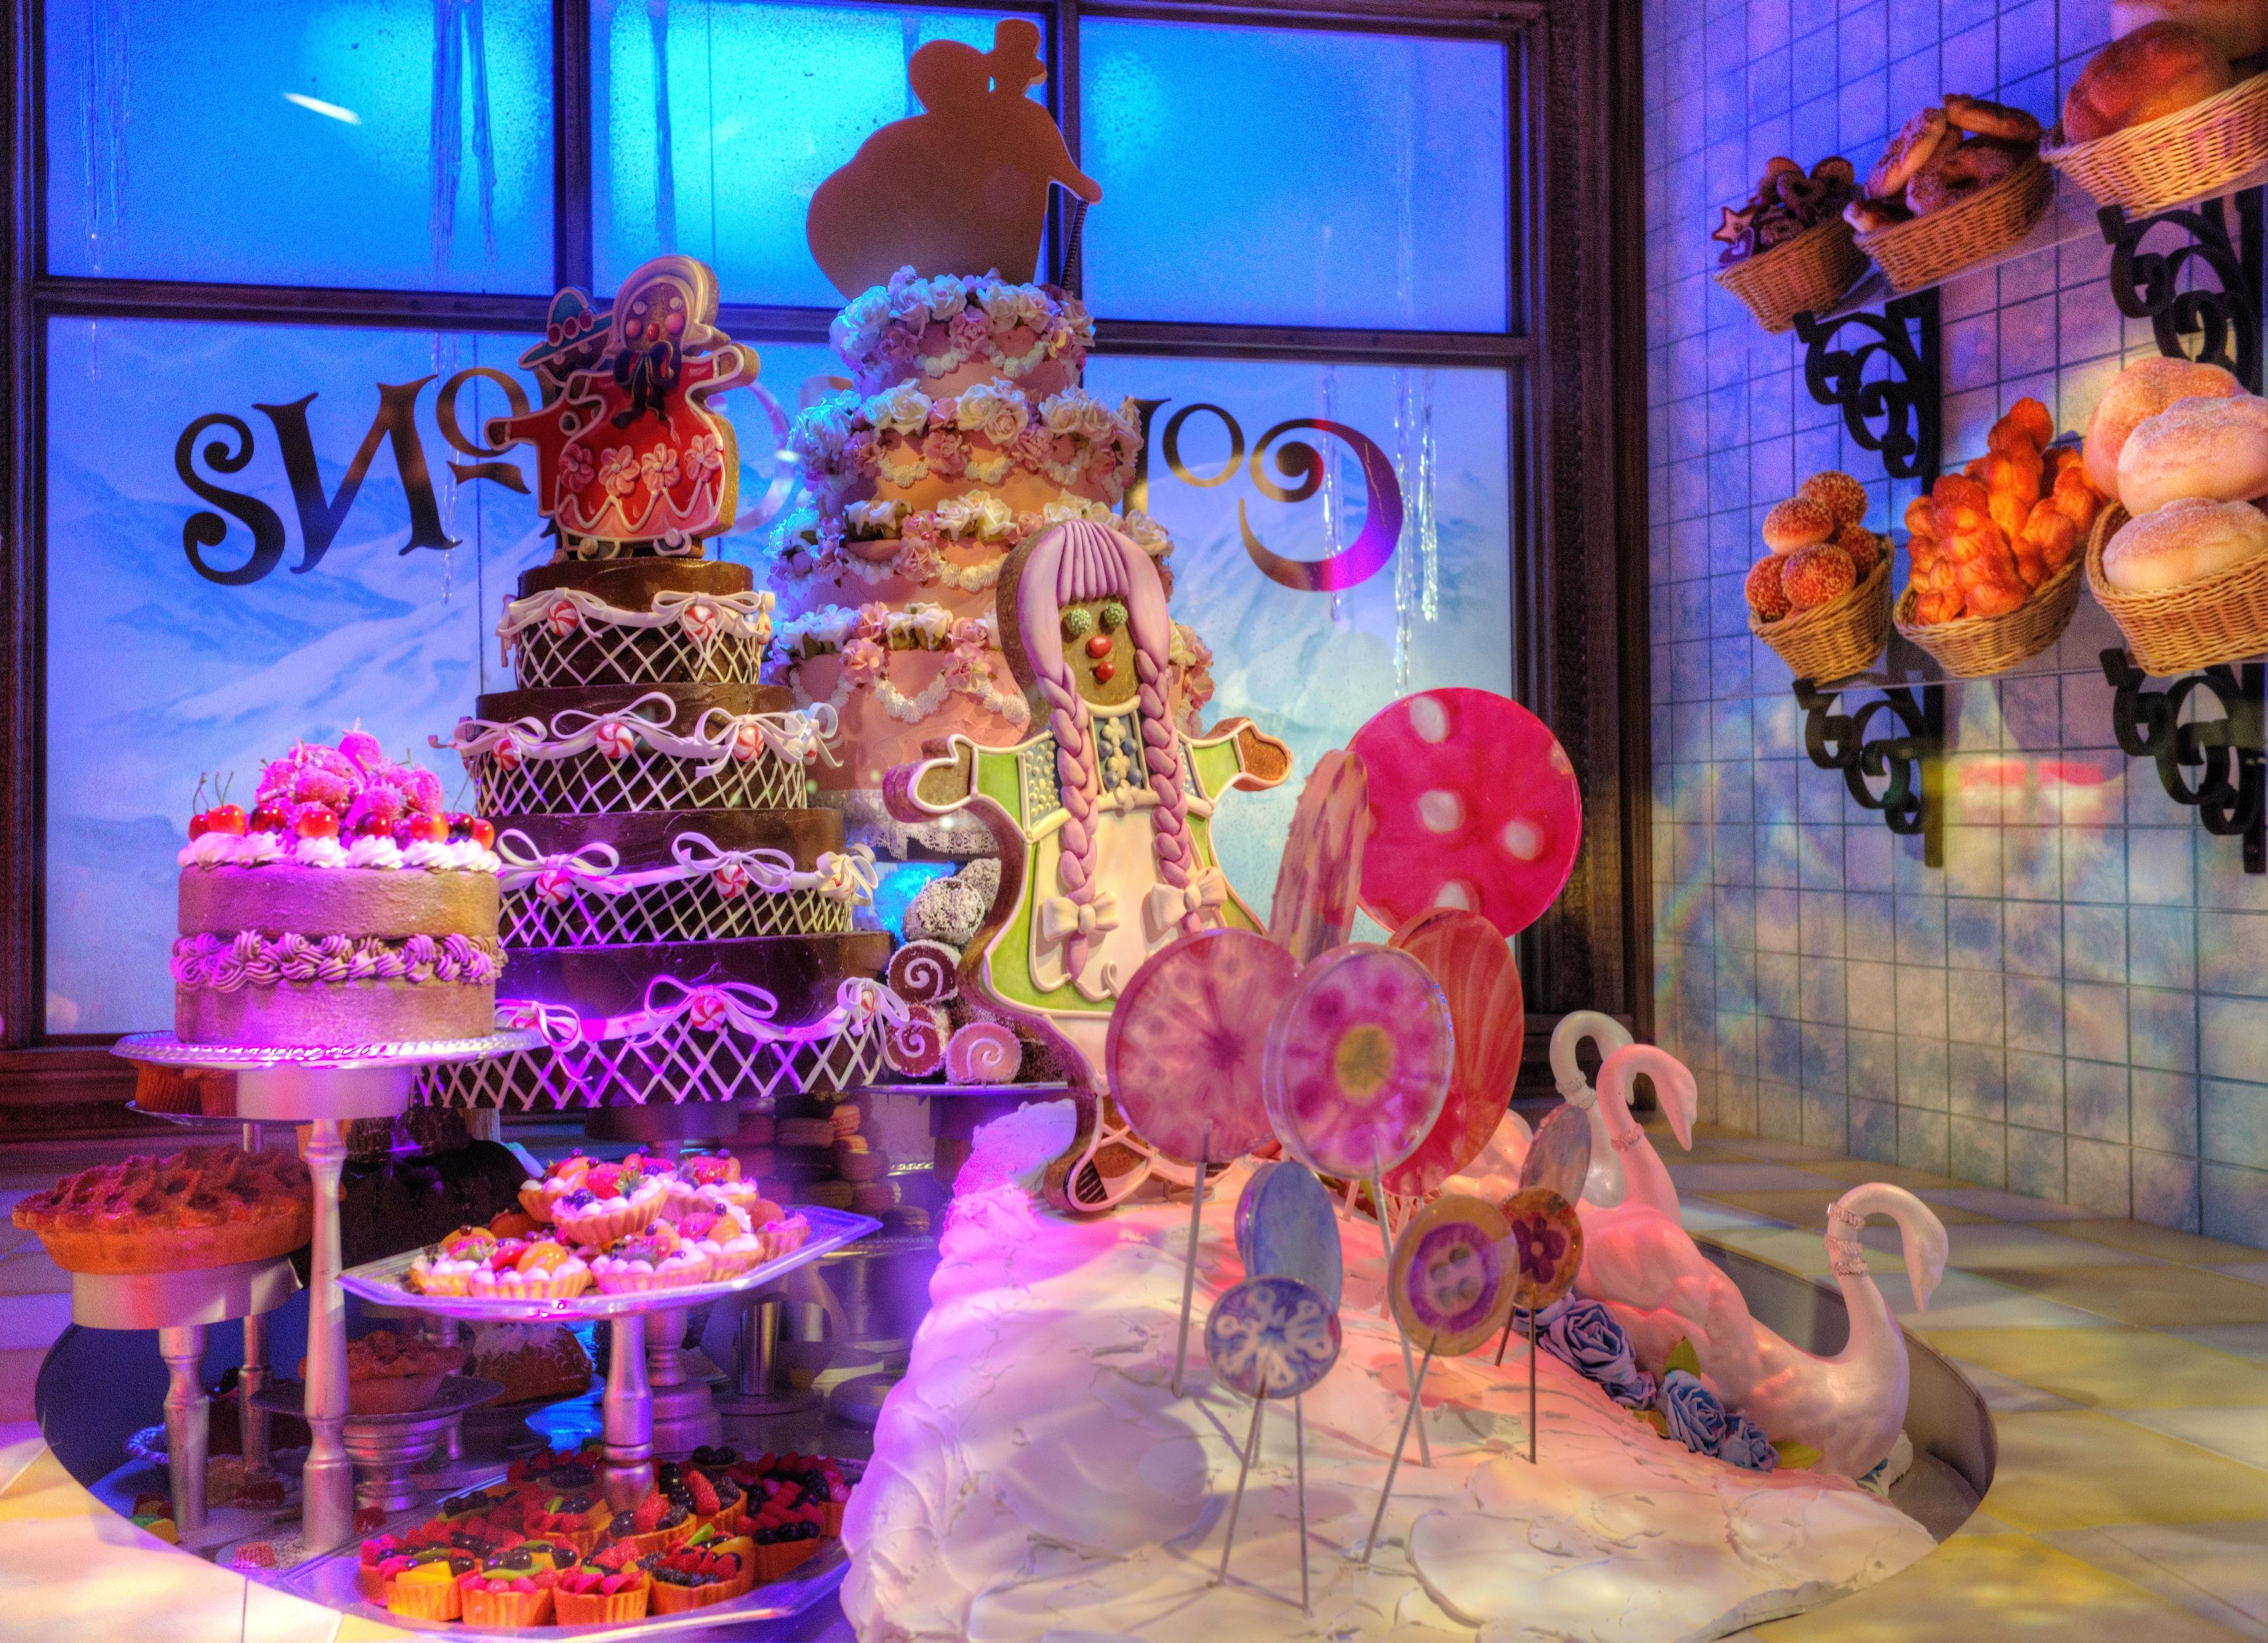 Christmas store window decorations - Christmas Toy Store Window Displays Google Search